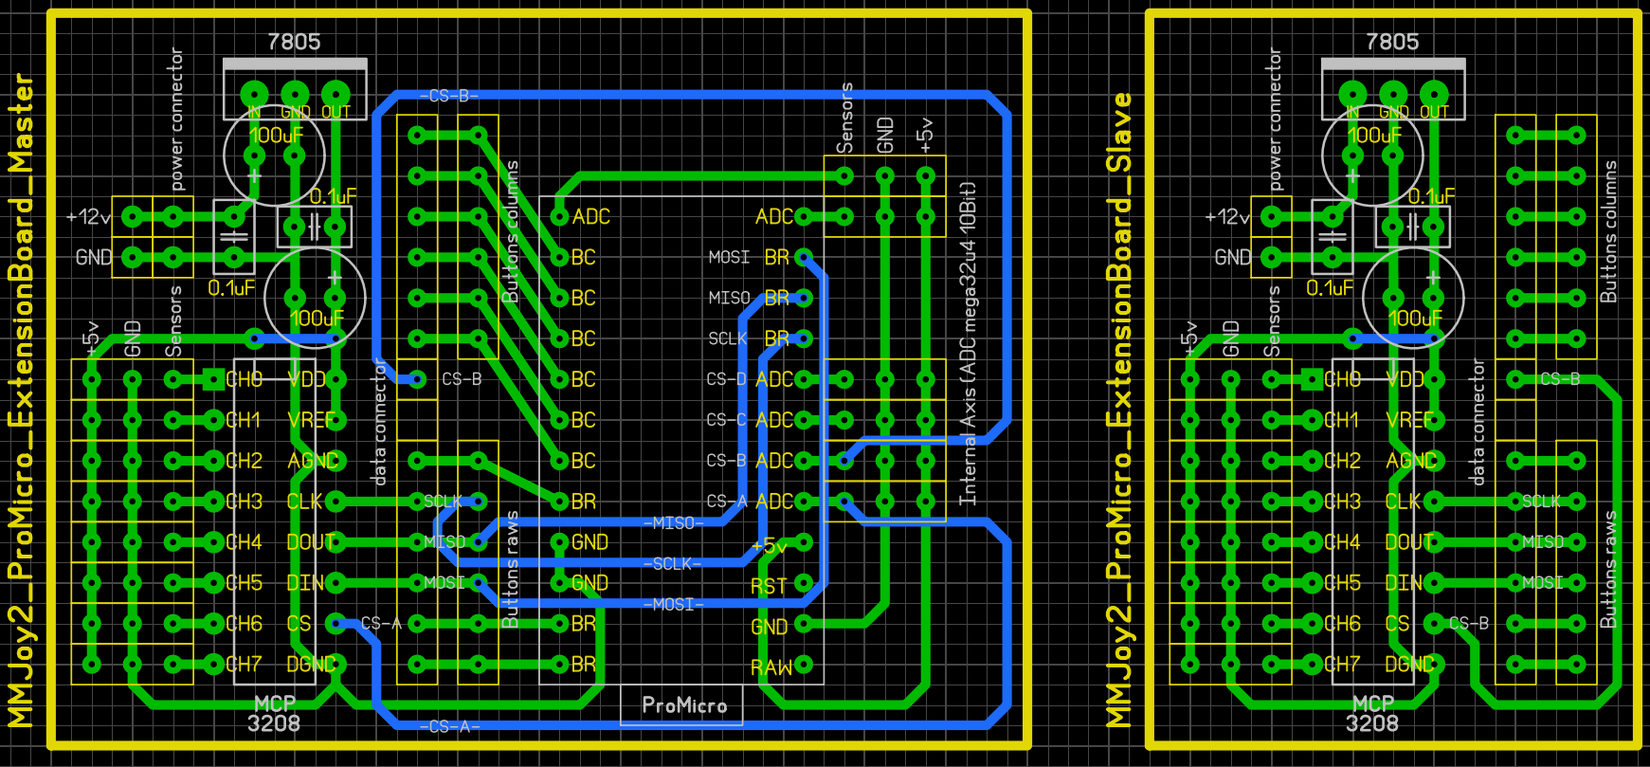 Mmjoy Mmjoy2 Build Your Own Usb Controller Simhq Forums Ps2 Diagram Flickr Photo Sharing Re 10 19 14 0633 Am